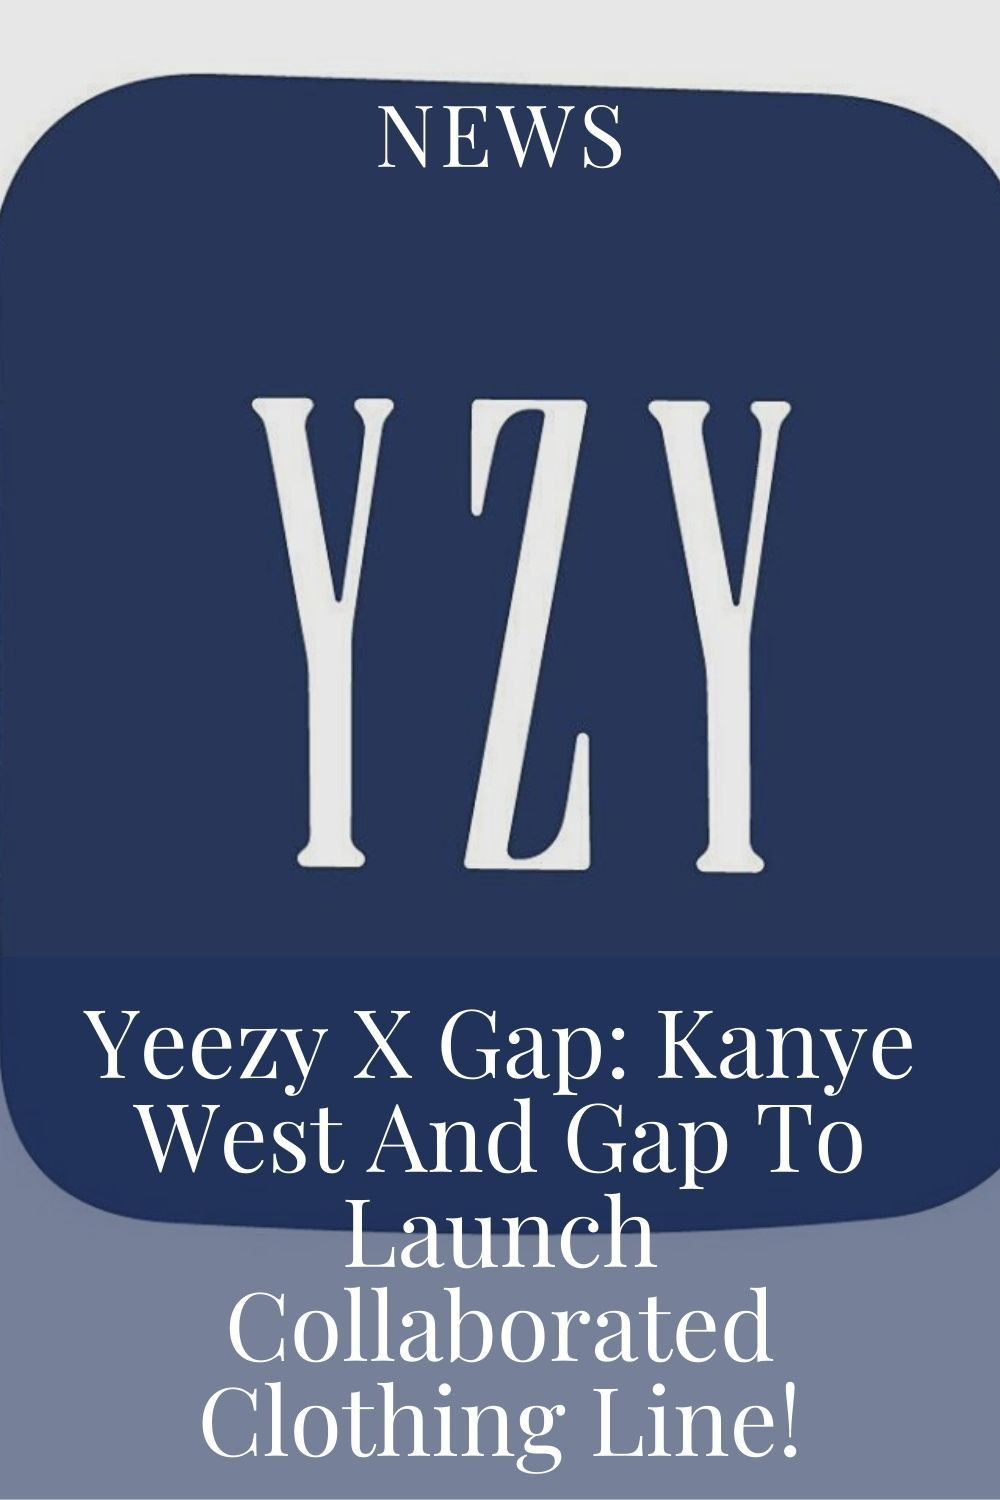 Yeezy X Gap Kanye West And Gap To Launch Collaborated Clothing Line In 2020 Yeezy Kanye West Style Kanye West